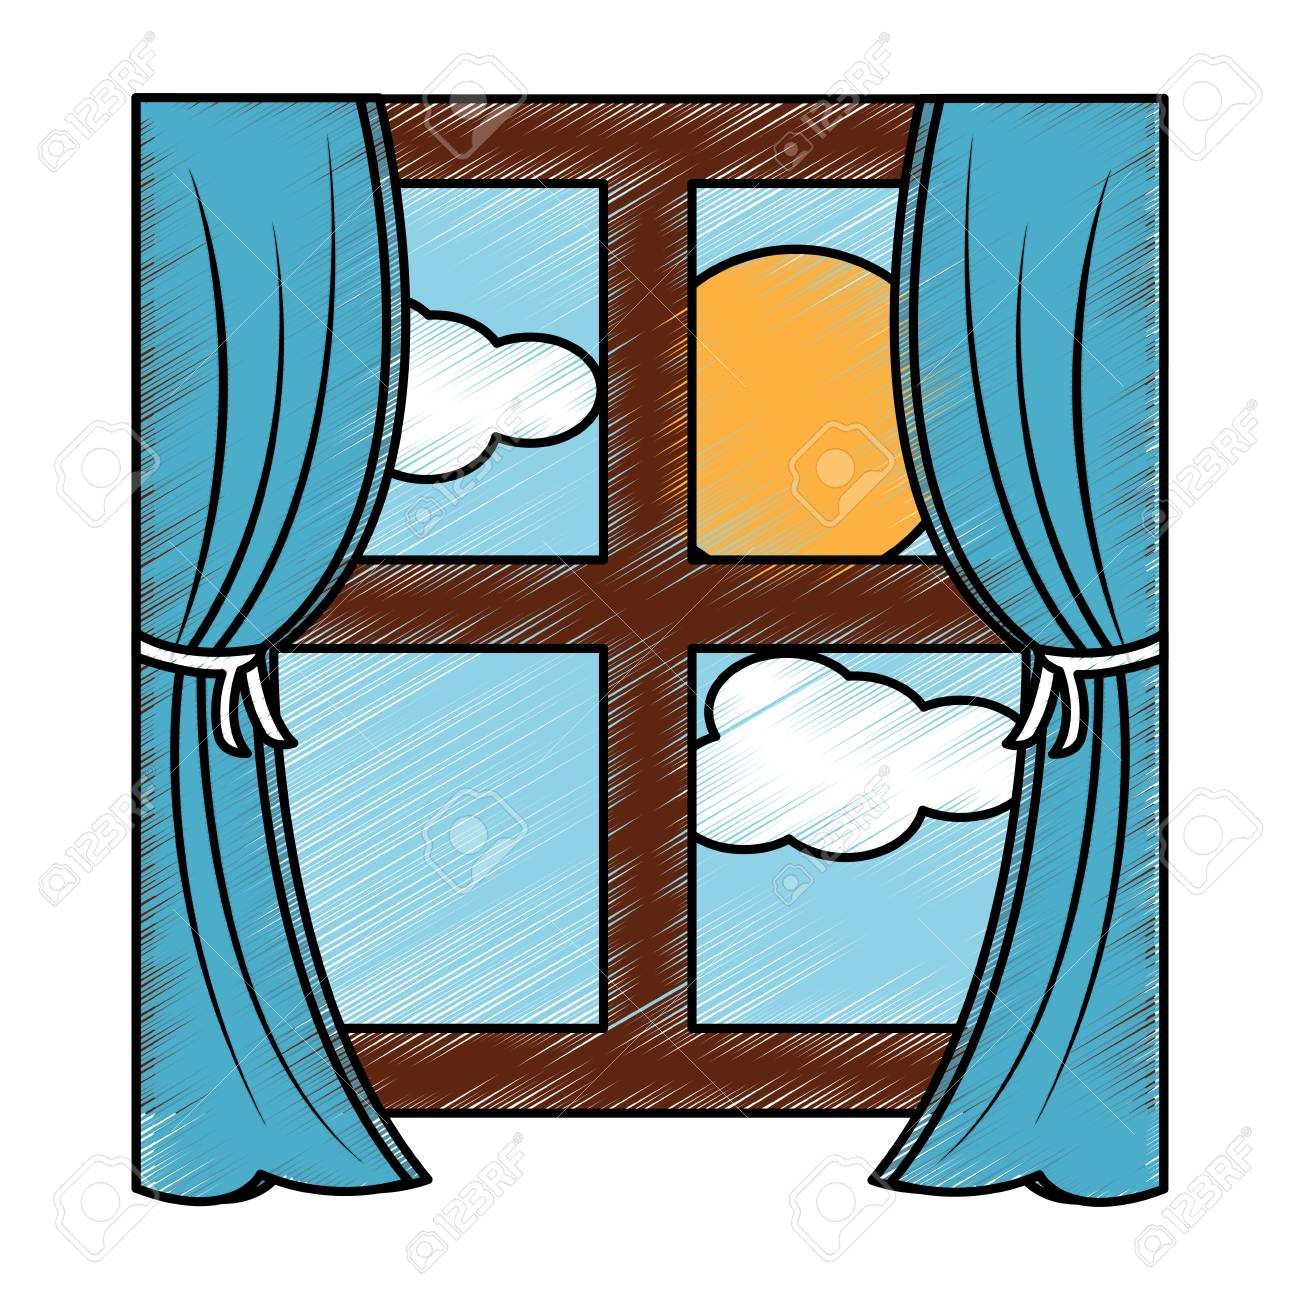 Wooden Window Frame With Curtains And Sun Clouds Sky Vector